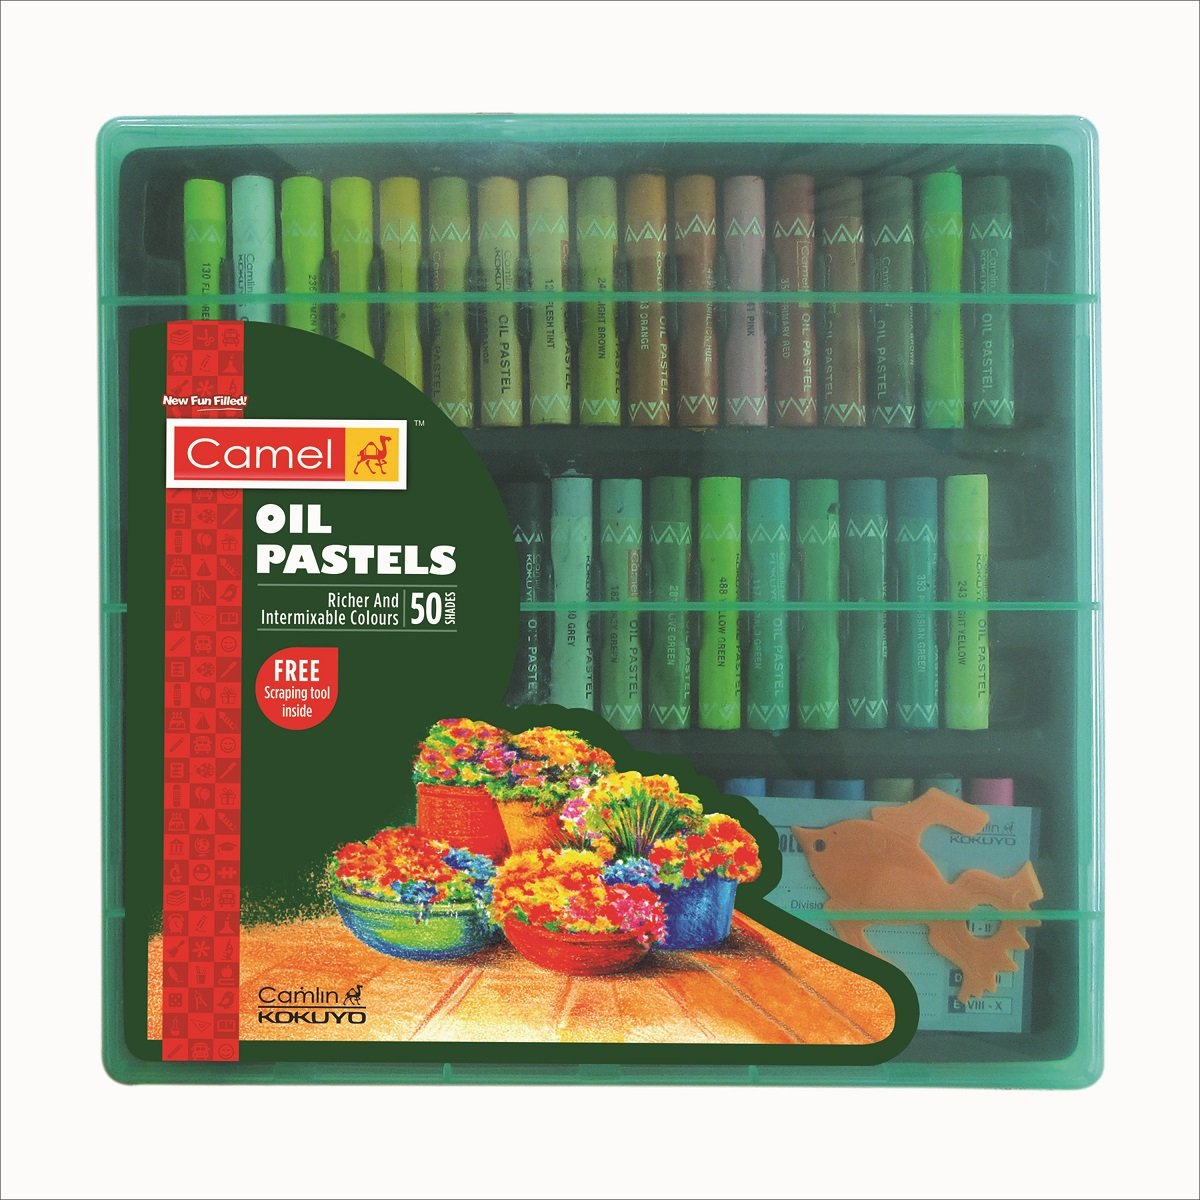 Camel Oil Pastel with Reusable Plastic Box - 50 Shades